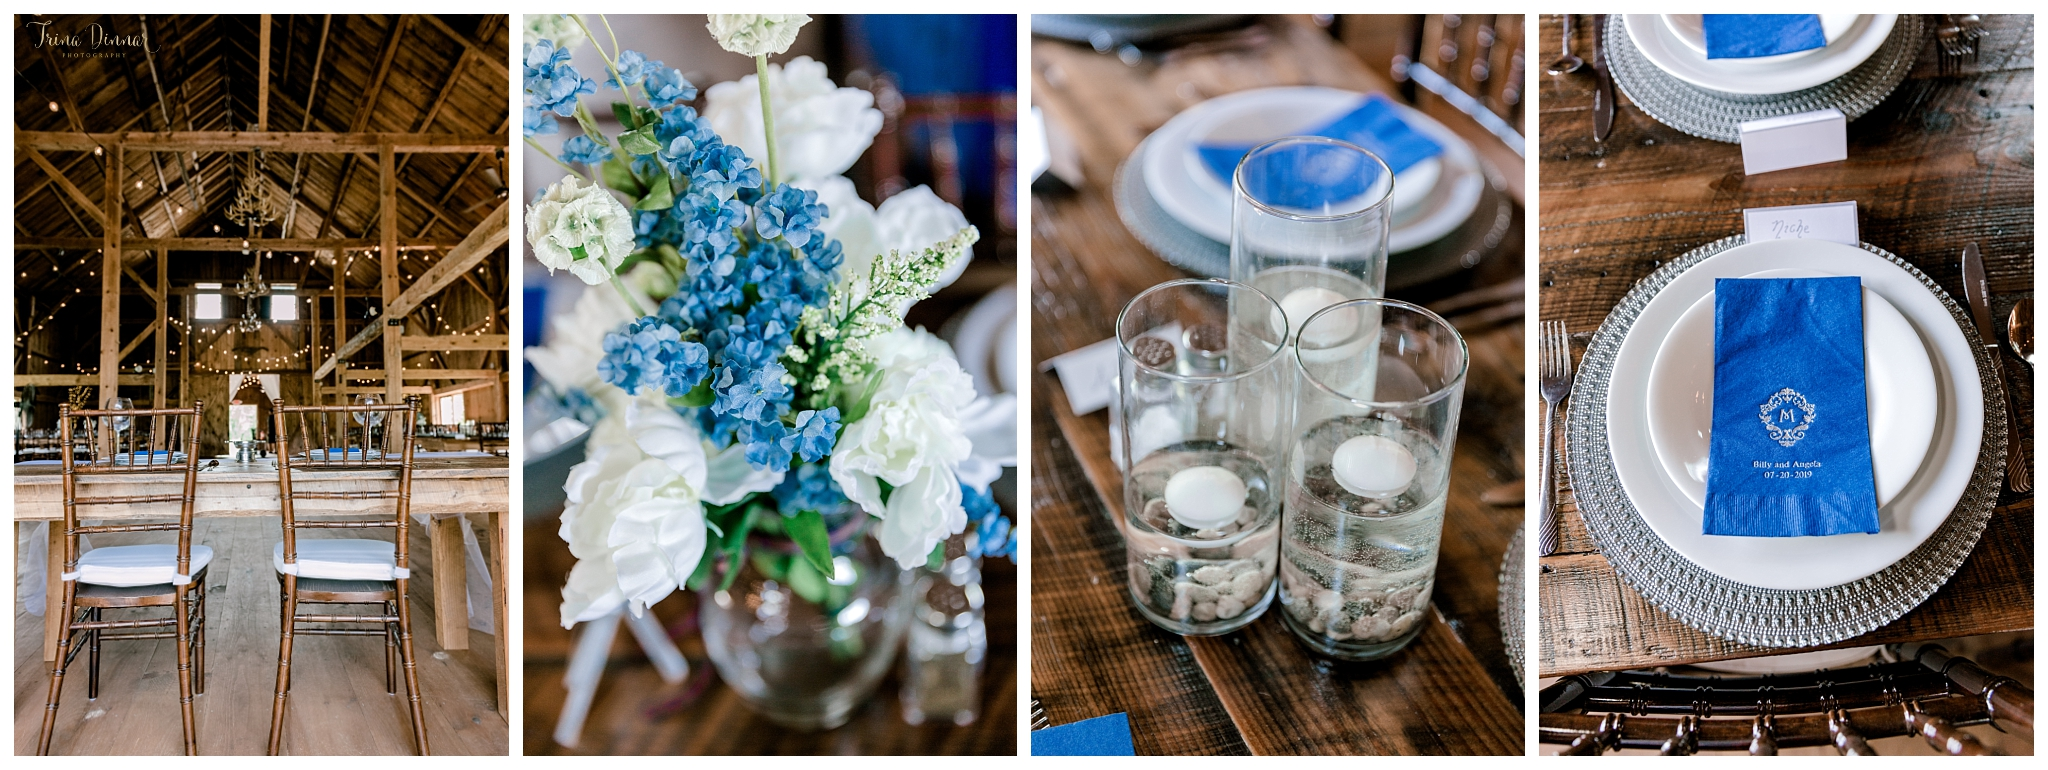 Blue Accent Rustic Barn Wedding Table Decor